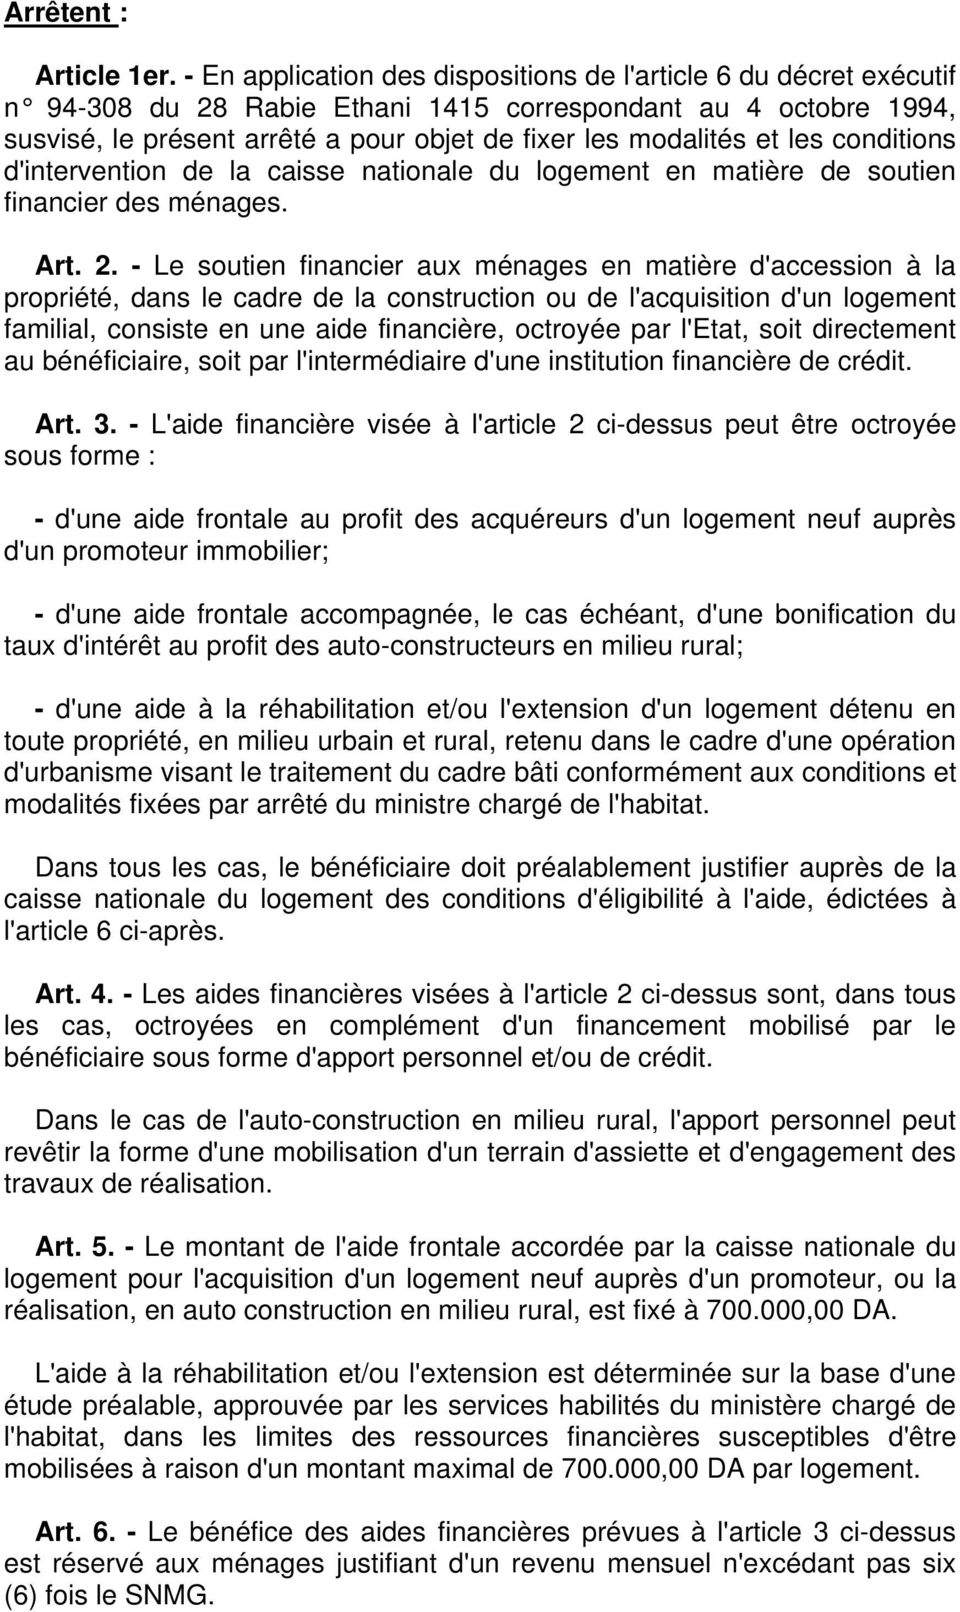 les conditions d'intervention de la caisse nationale du logement en matière de soutien financier des ménages. Art. 2.